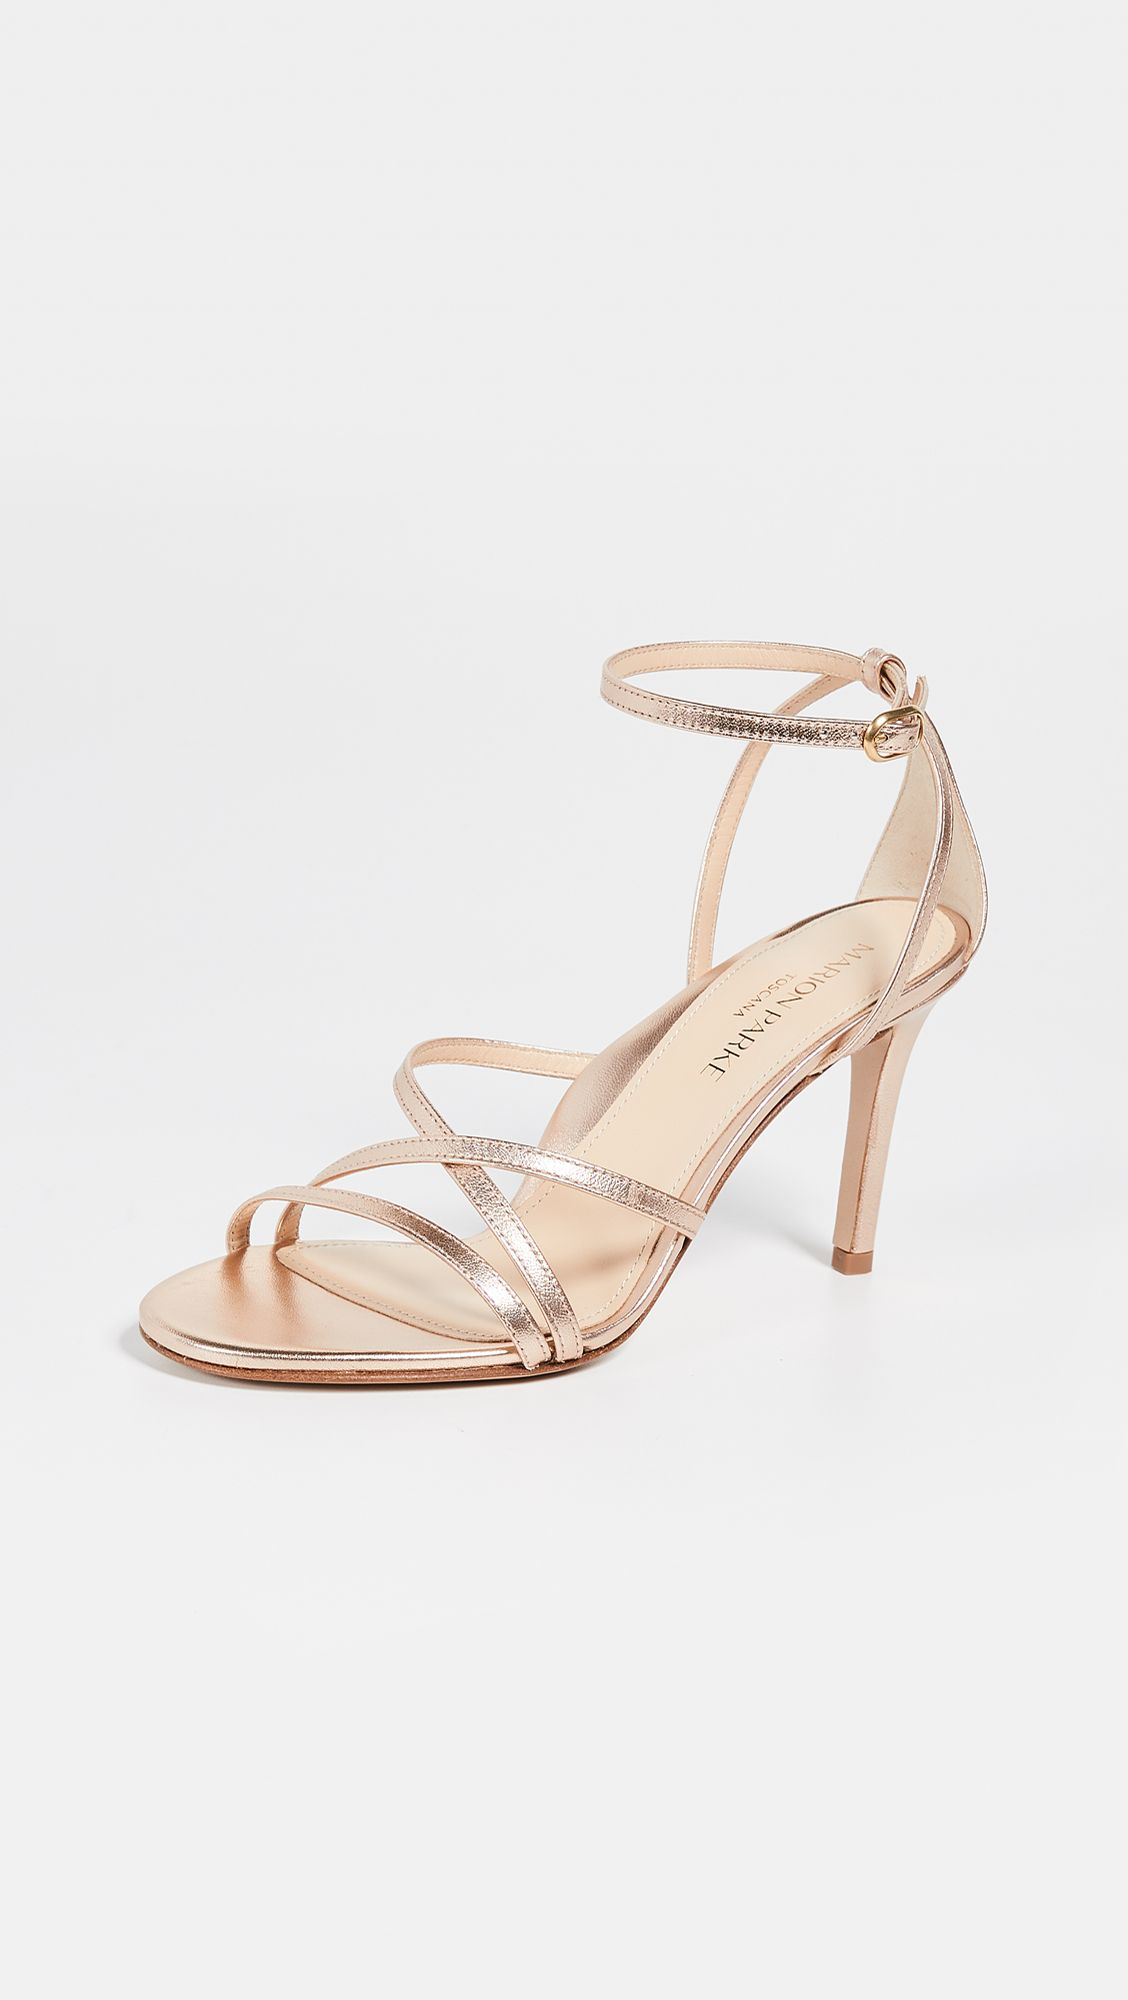 Lillian Strappy Sandals Strappy Sandals Marion Parke Trending Sandals